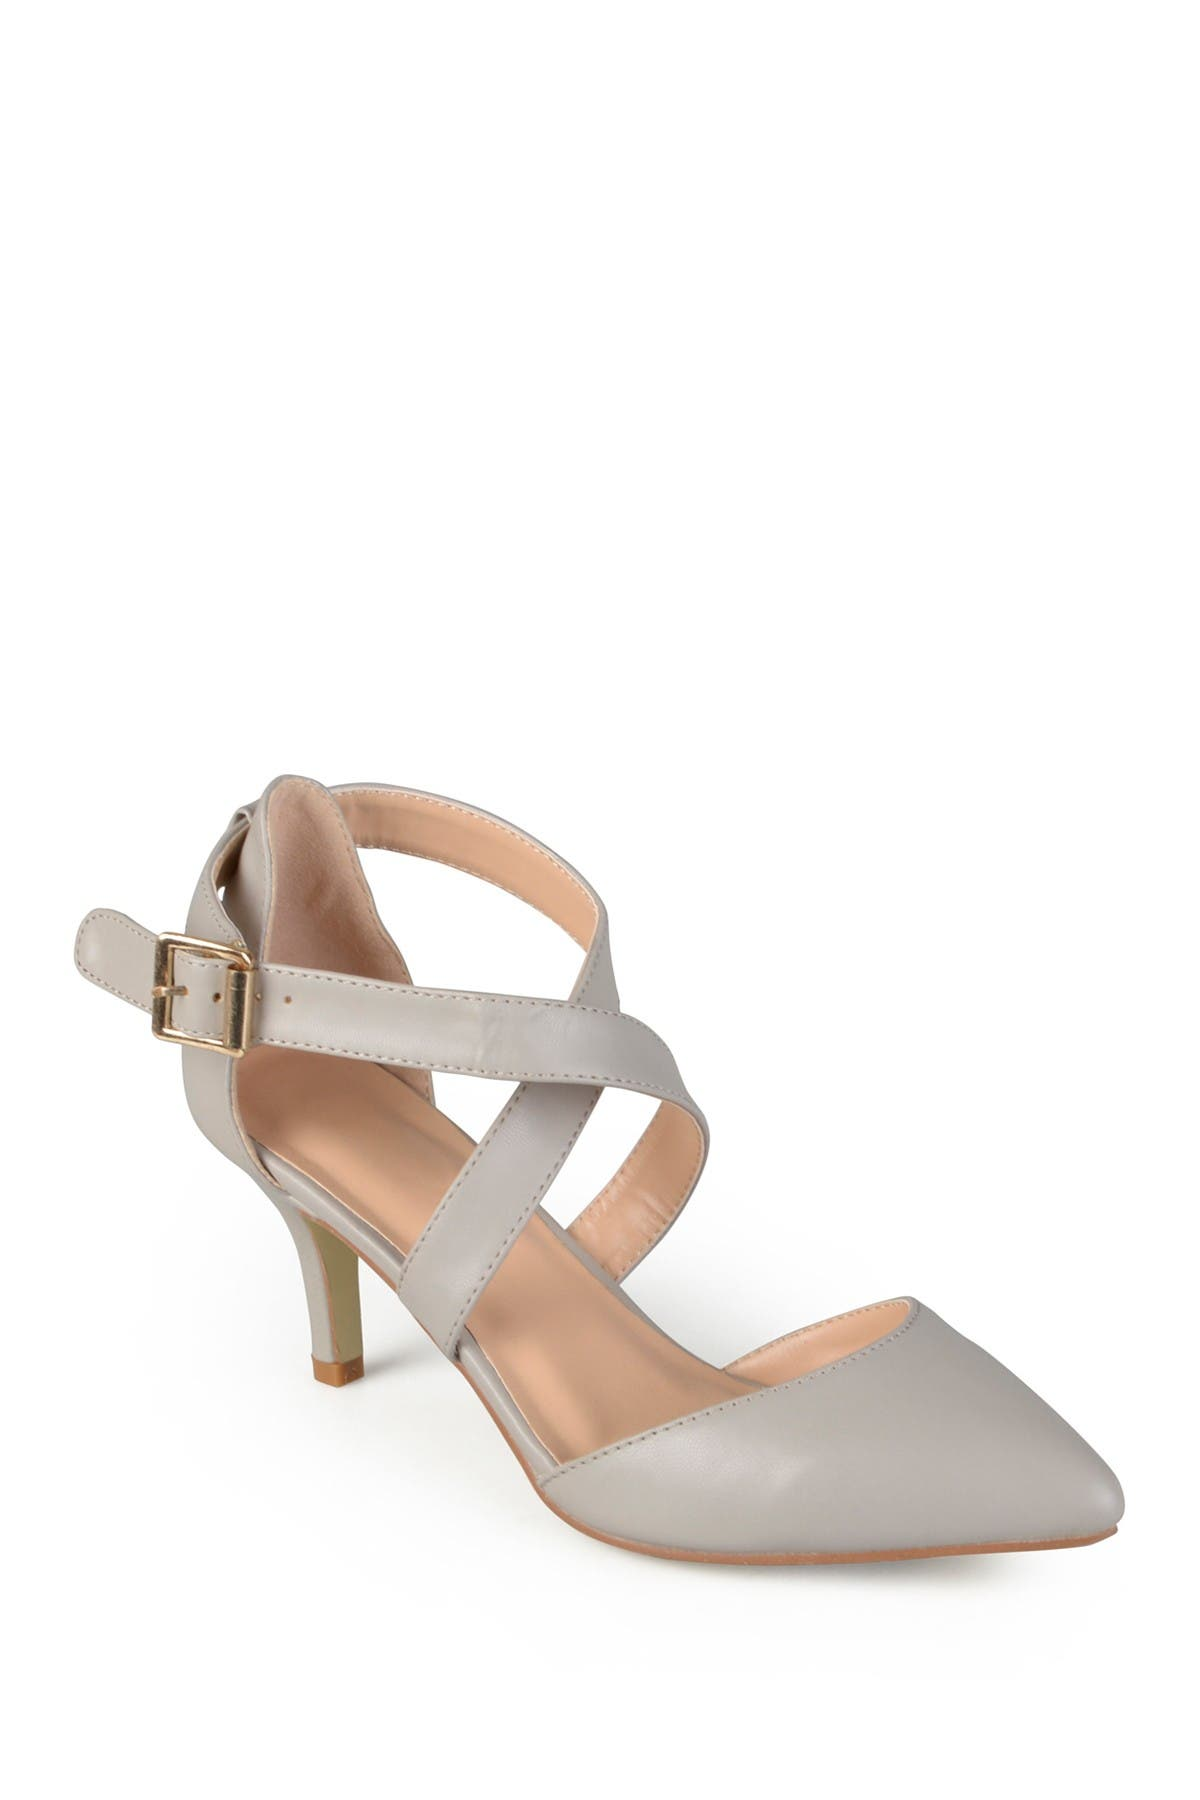 Image of JOURNEE Collection Riva Crossover Pump